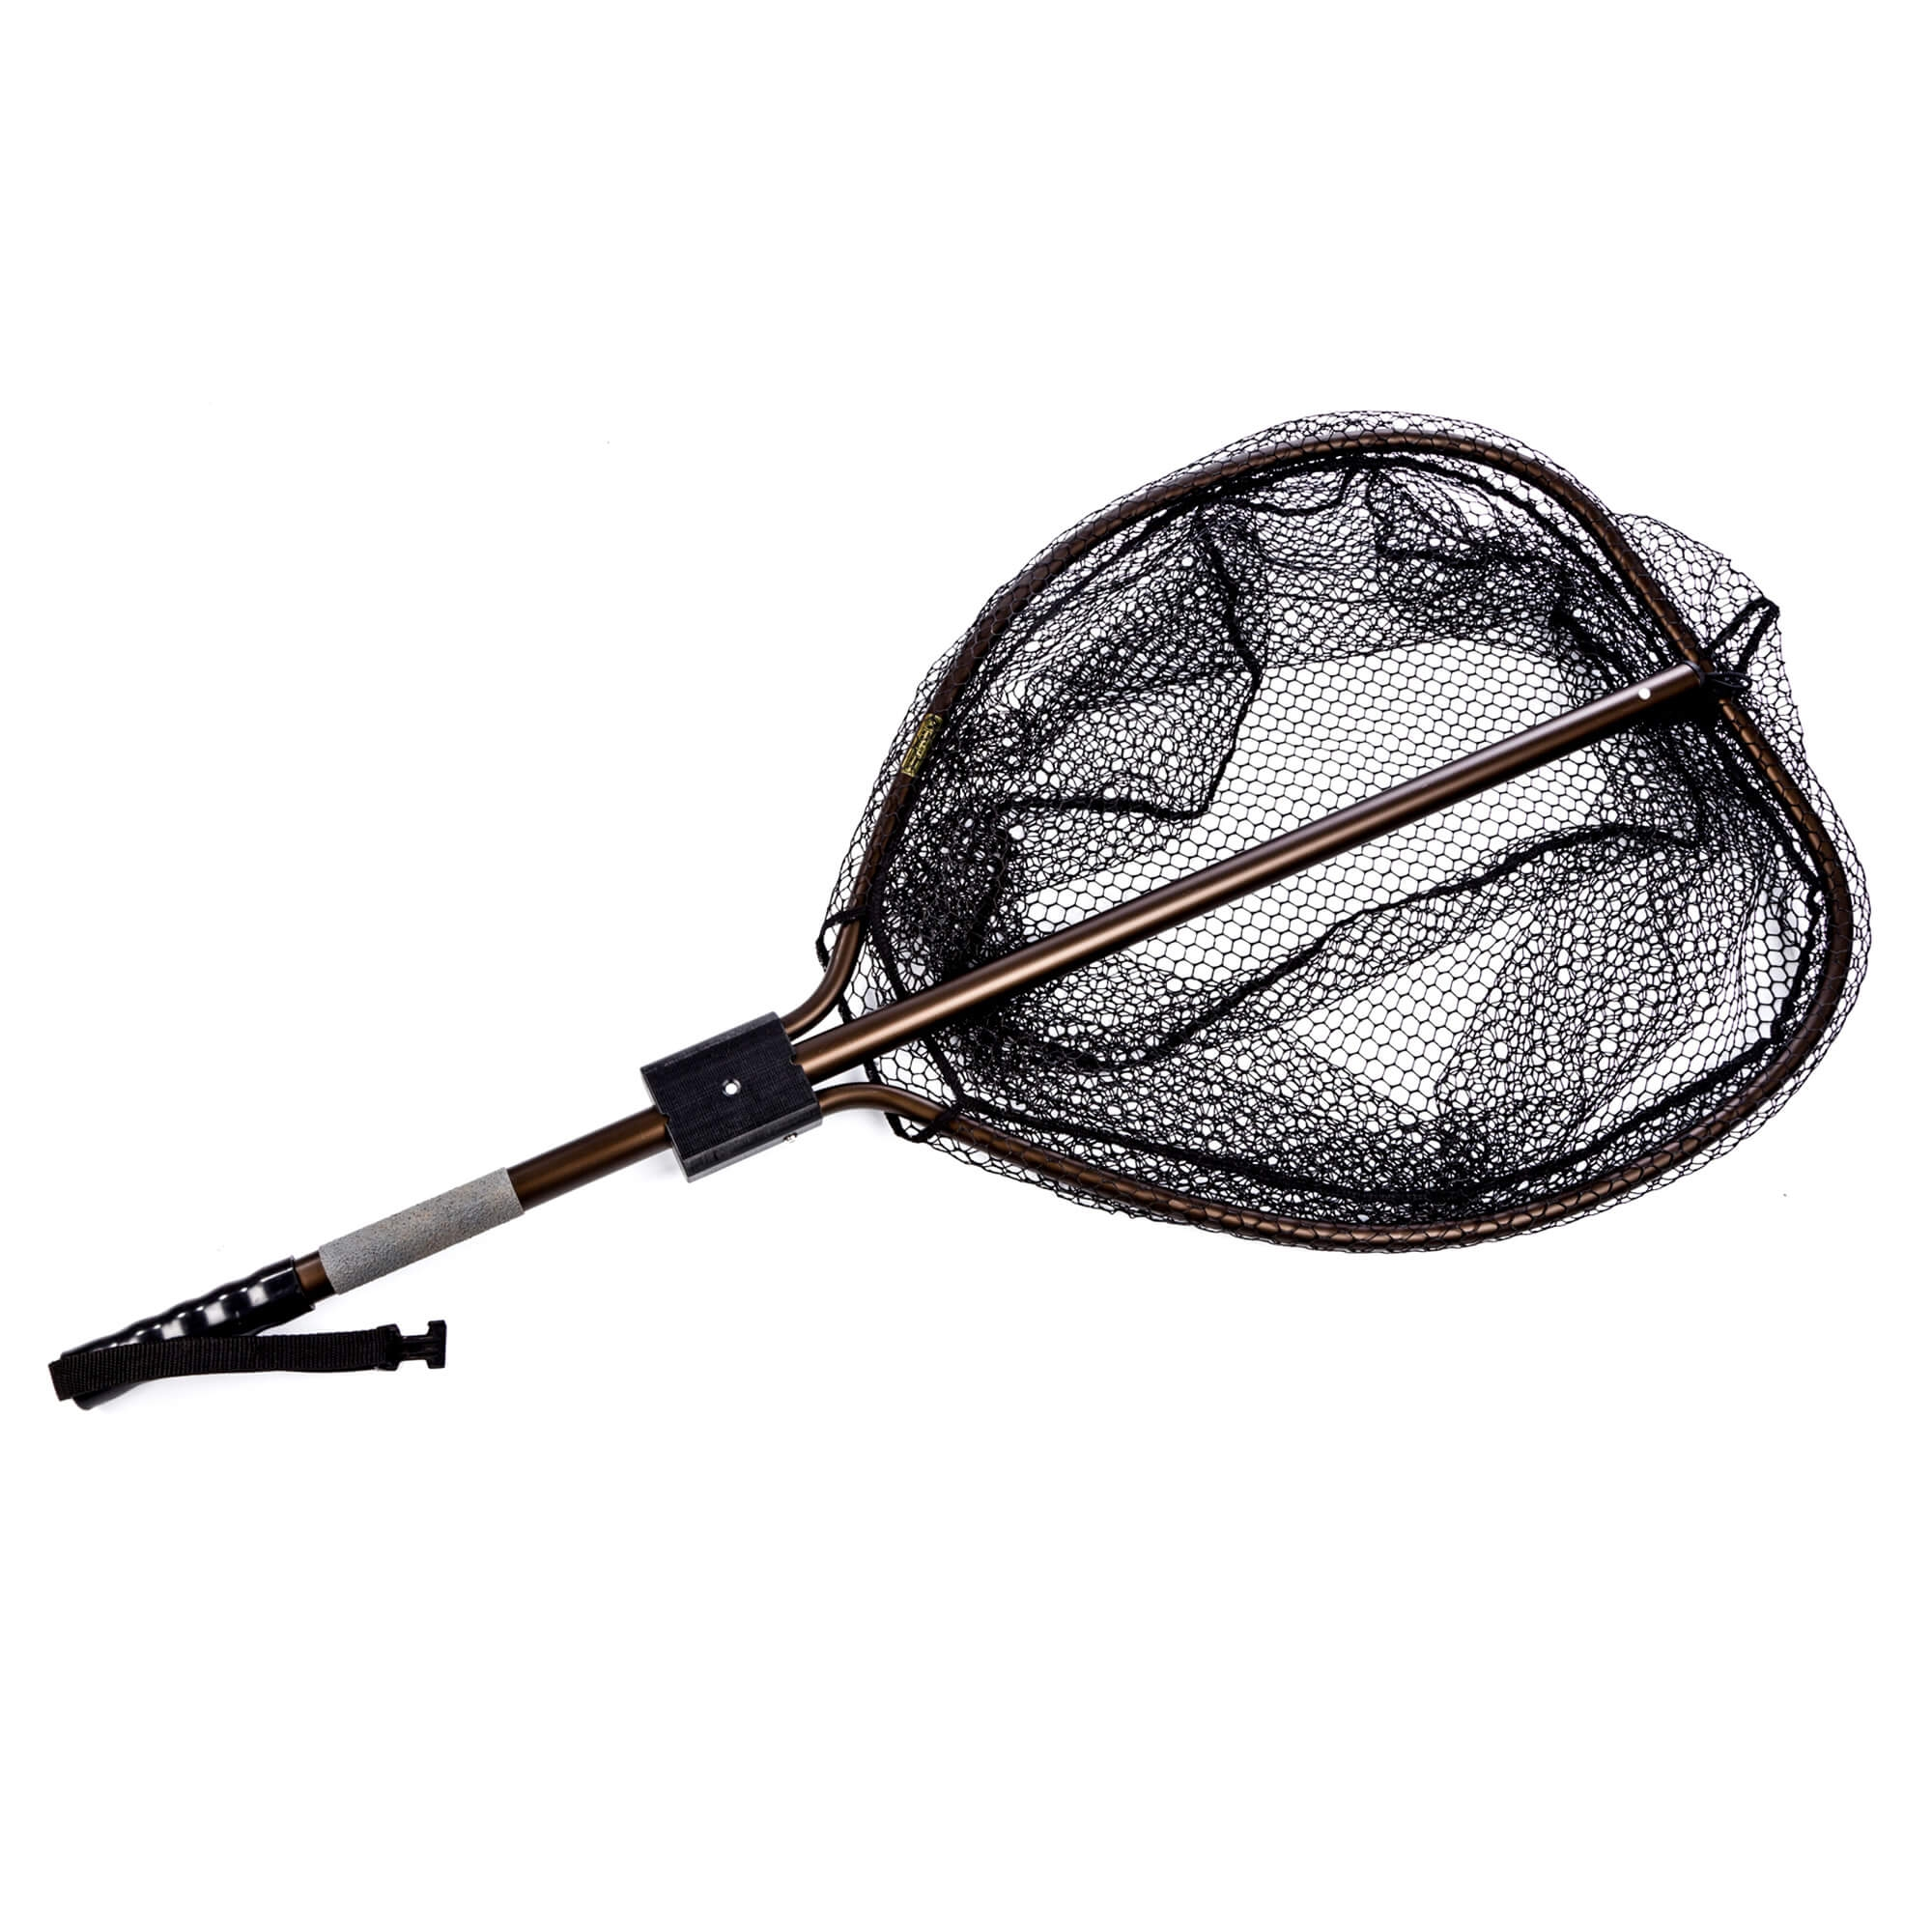 SEA TROUT & SPECIMEN WEIGH NET RUBBER